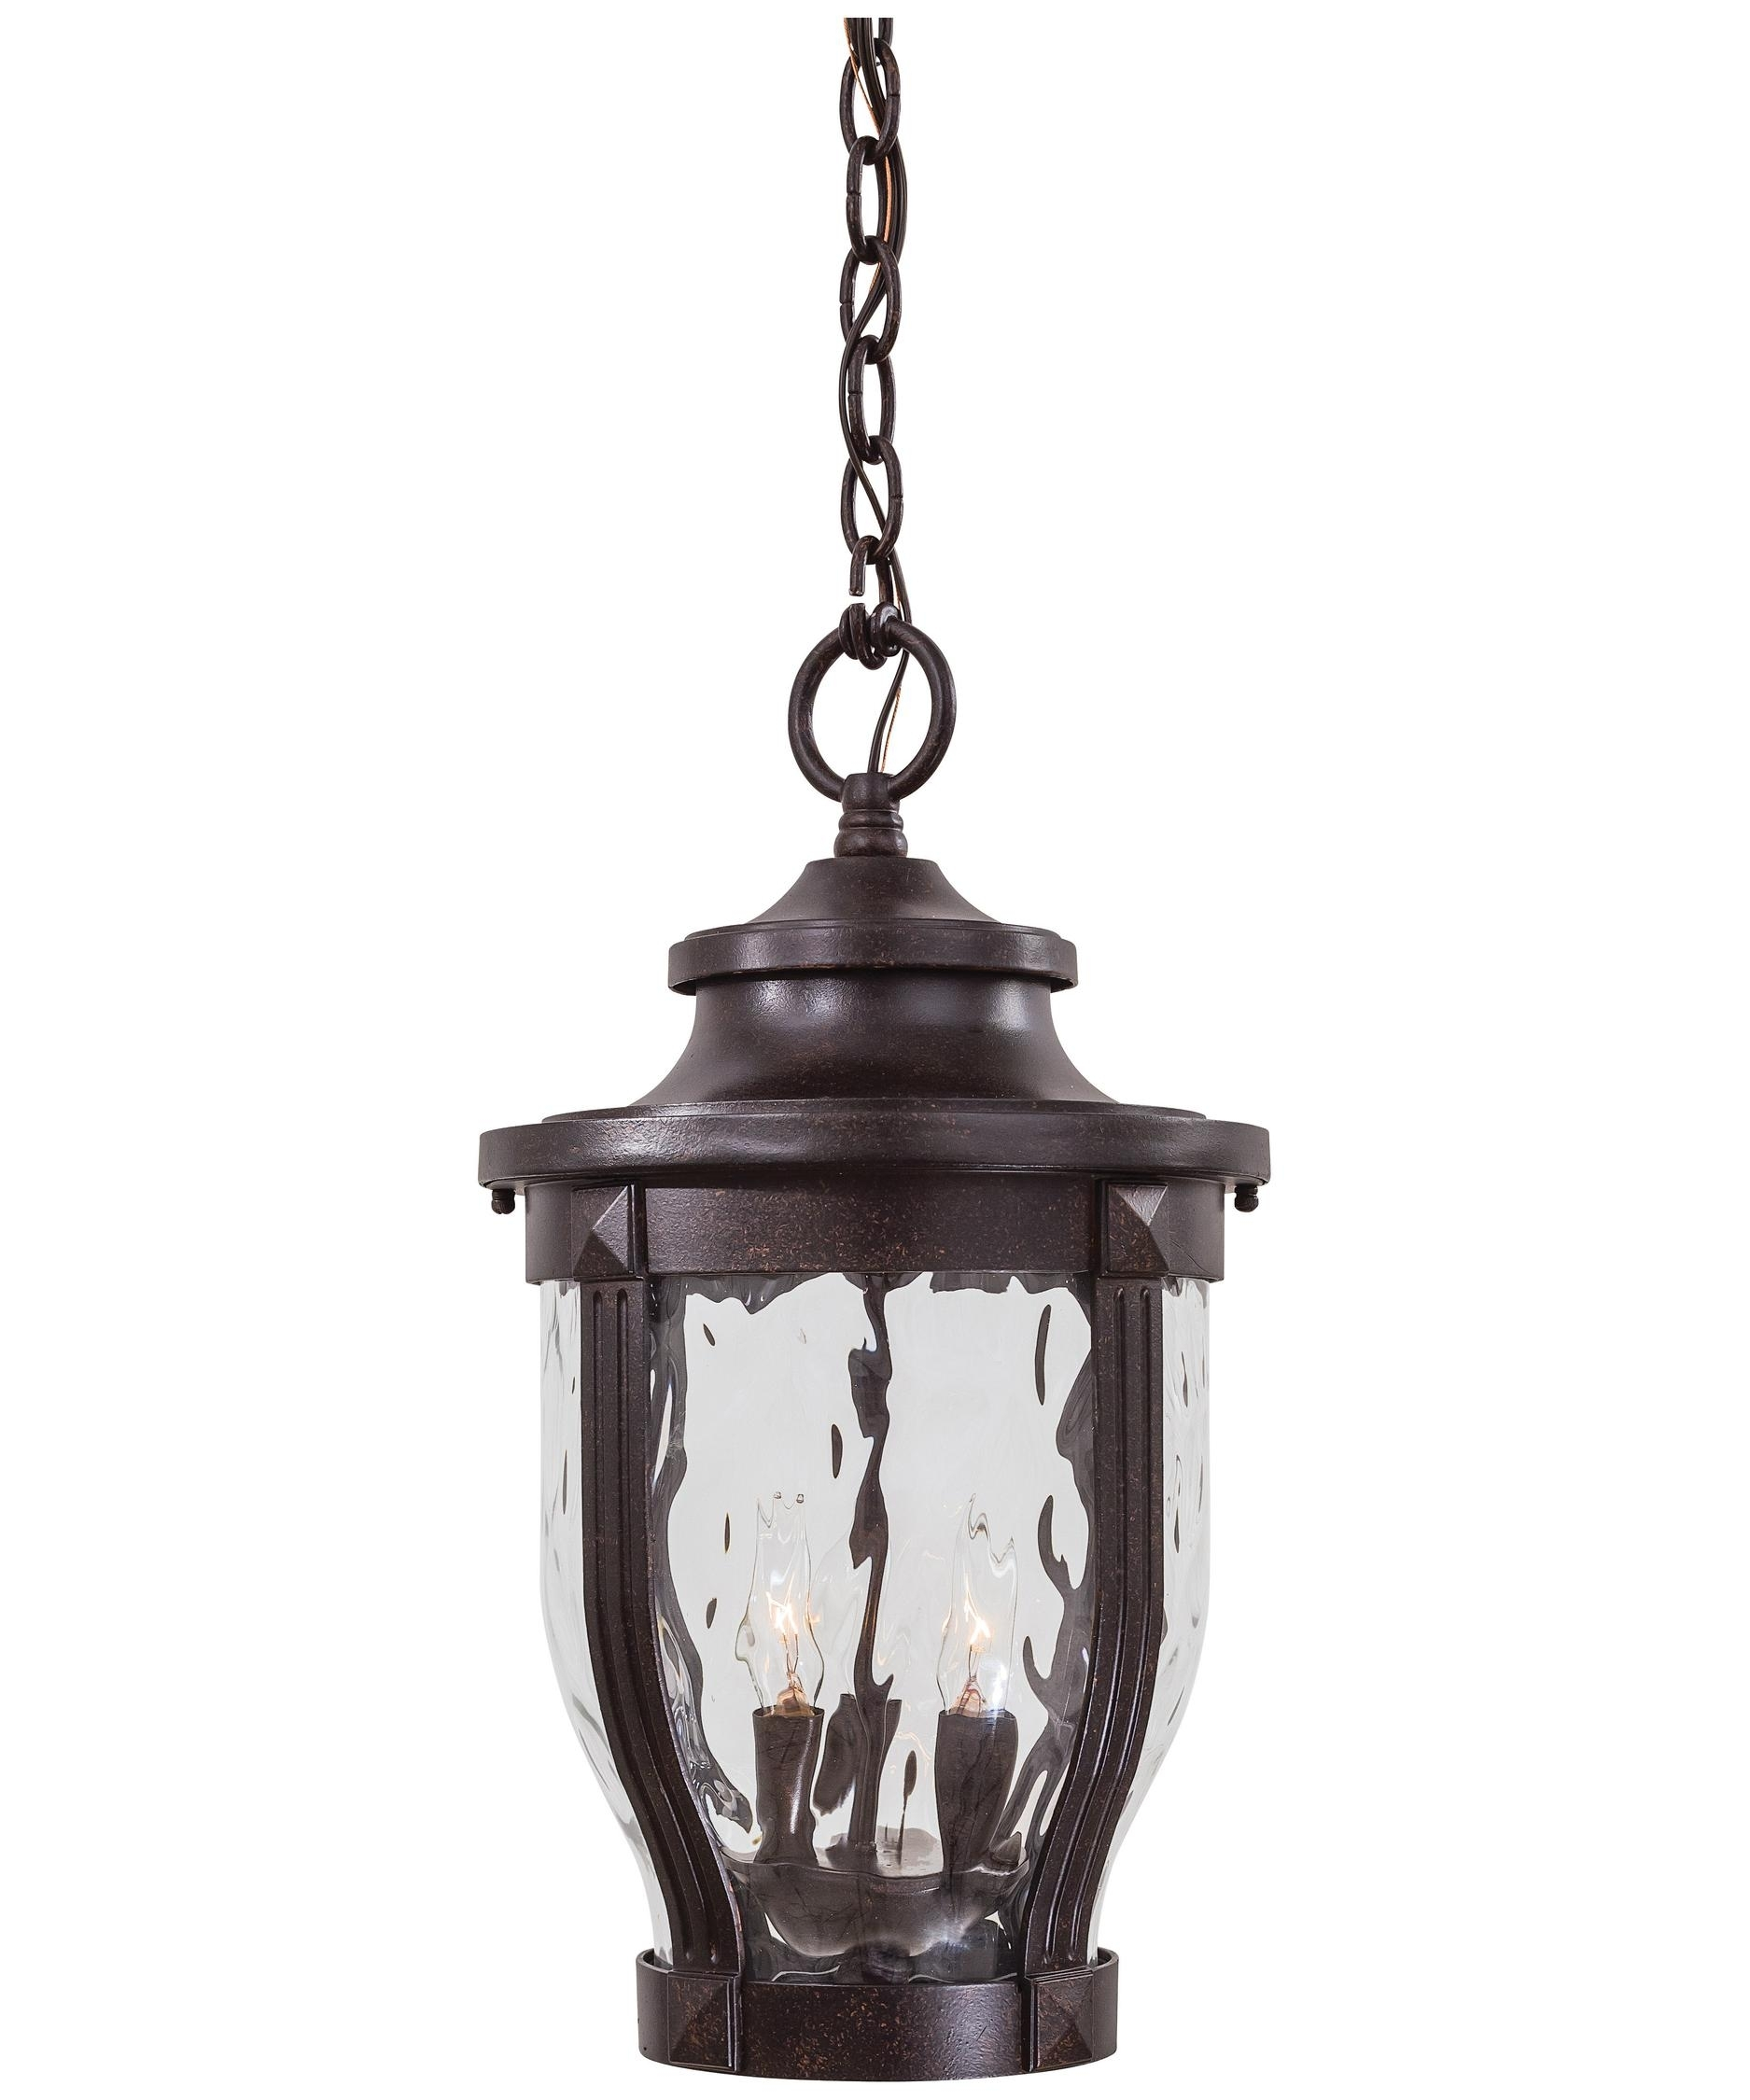 Minka Lavery 8764 Merrimack 10 Inch Wide 3 Light Outdoor Hanging Pertaining To Outdoor Entryway Hanging Lights (#11 of 15)